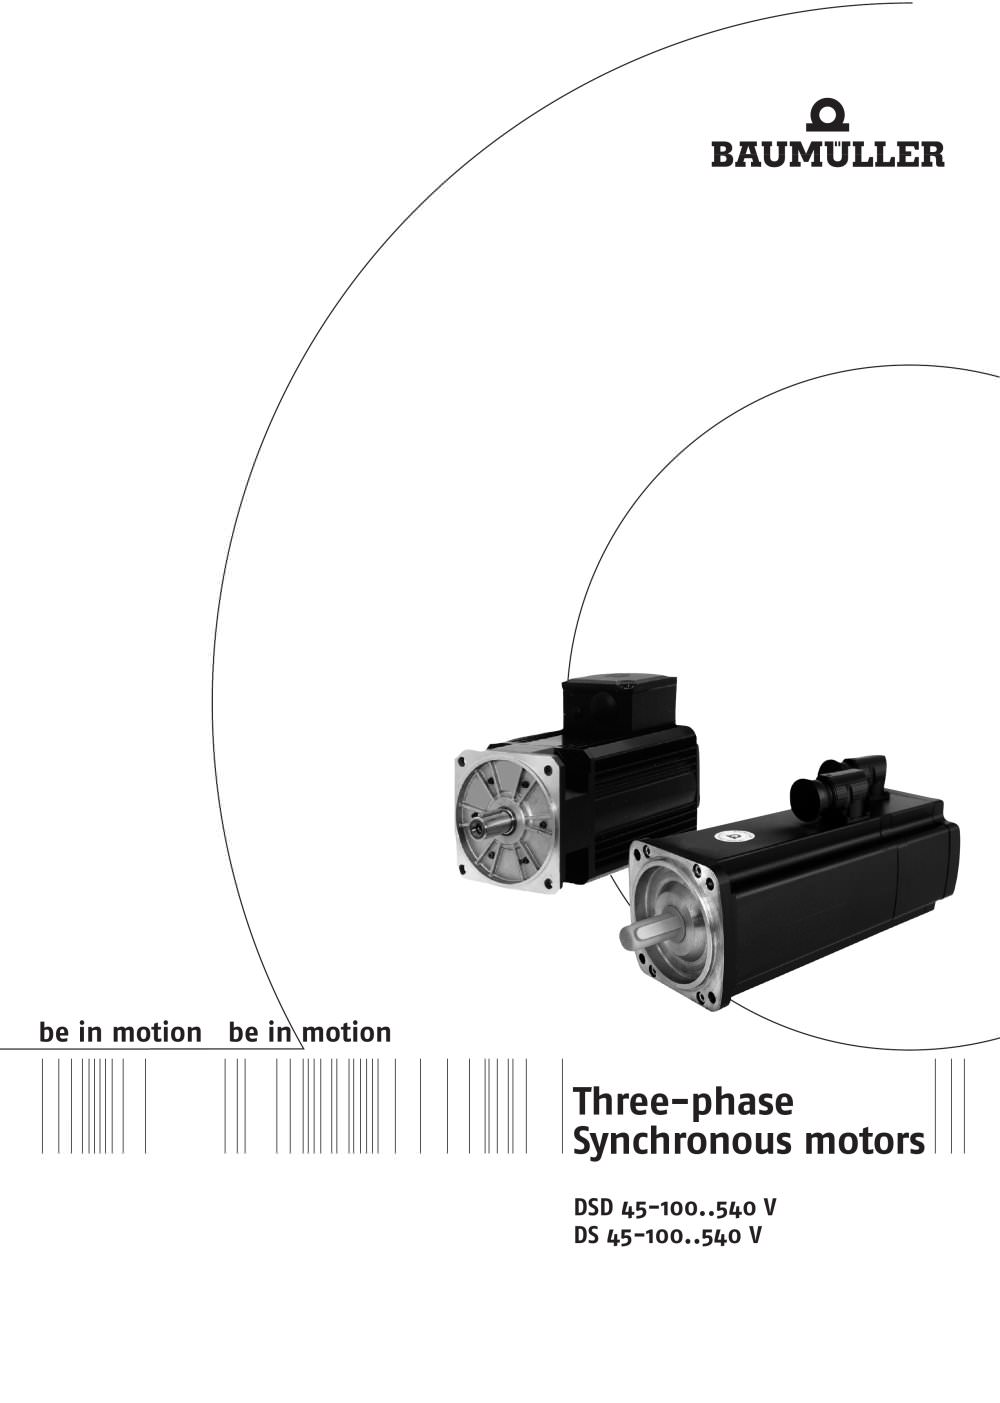 Three-phase Synchronous motors DSD 45-100 - 1 / 68 Pages